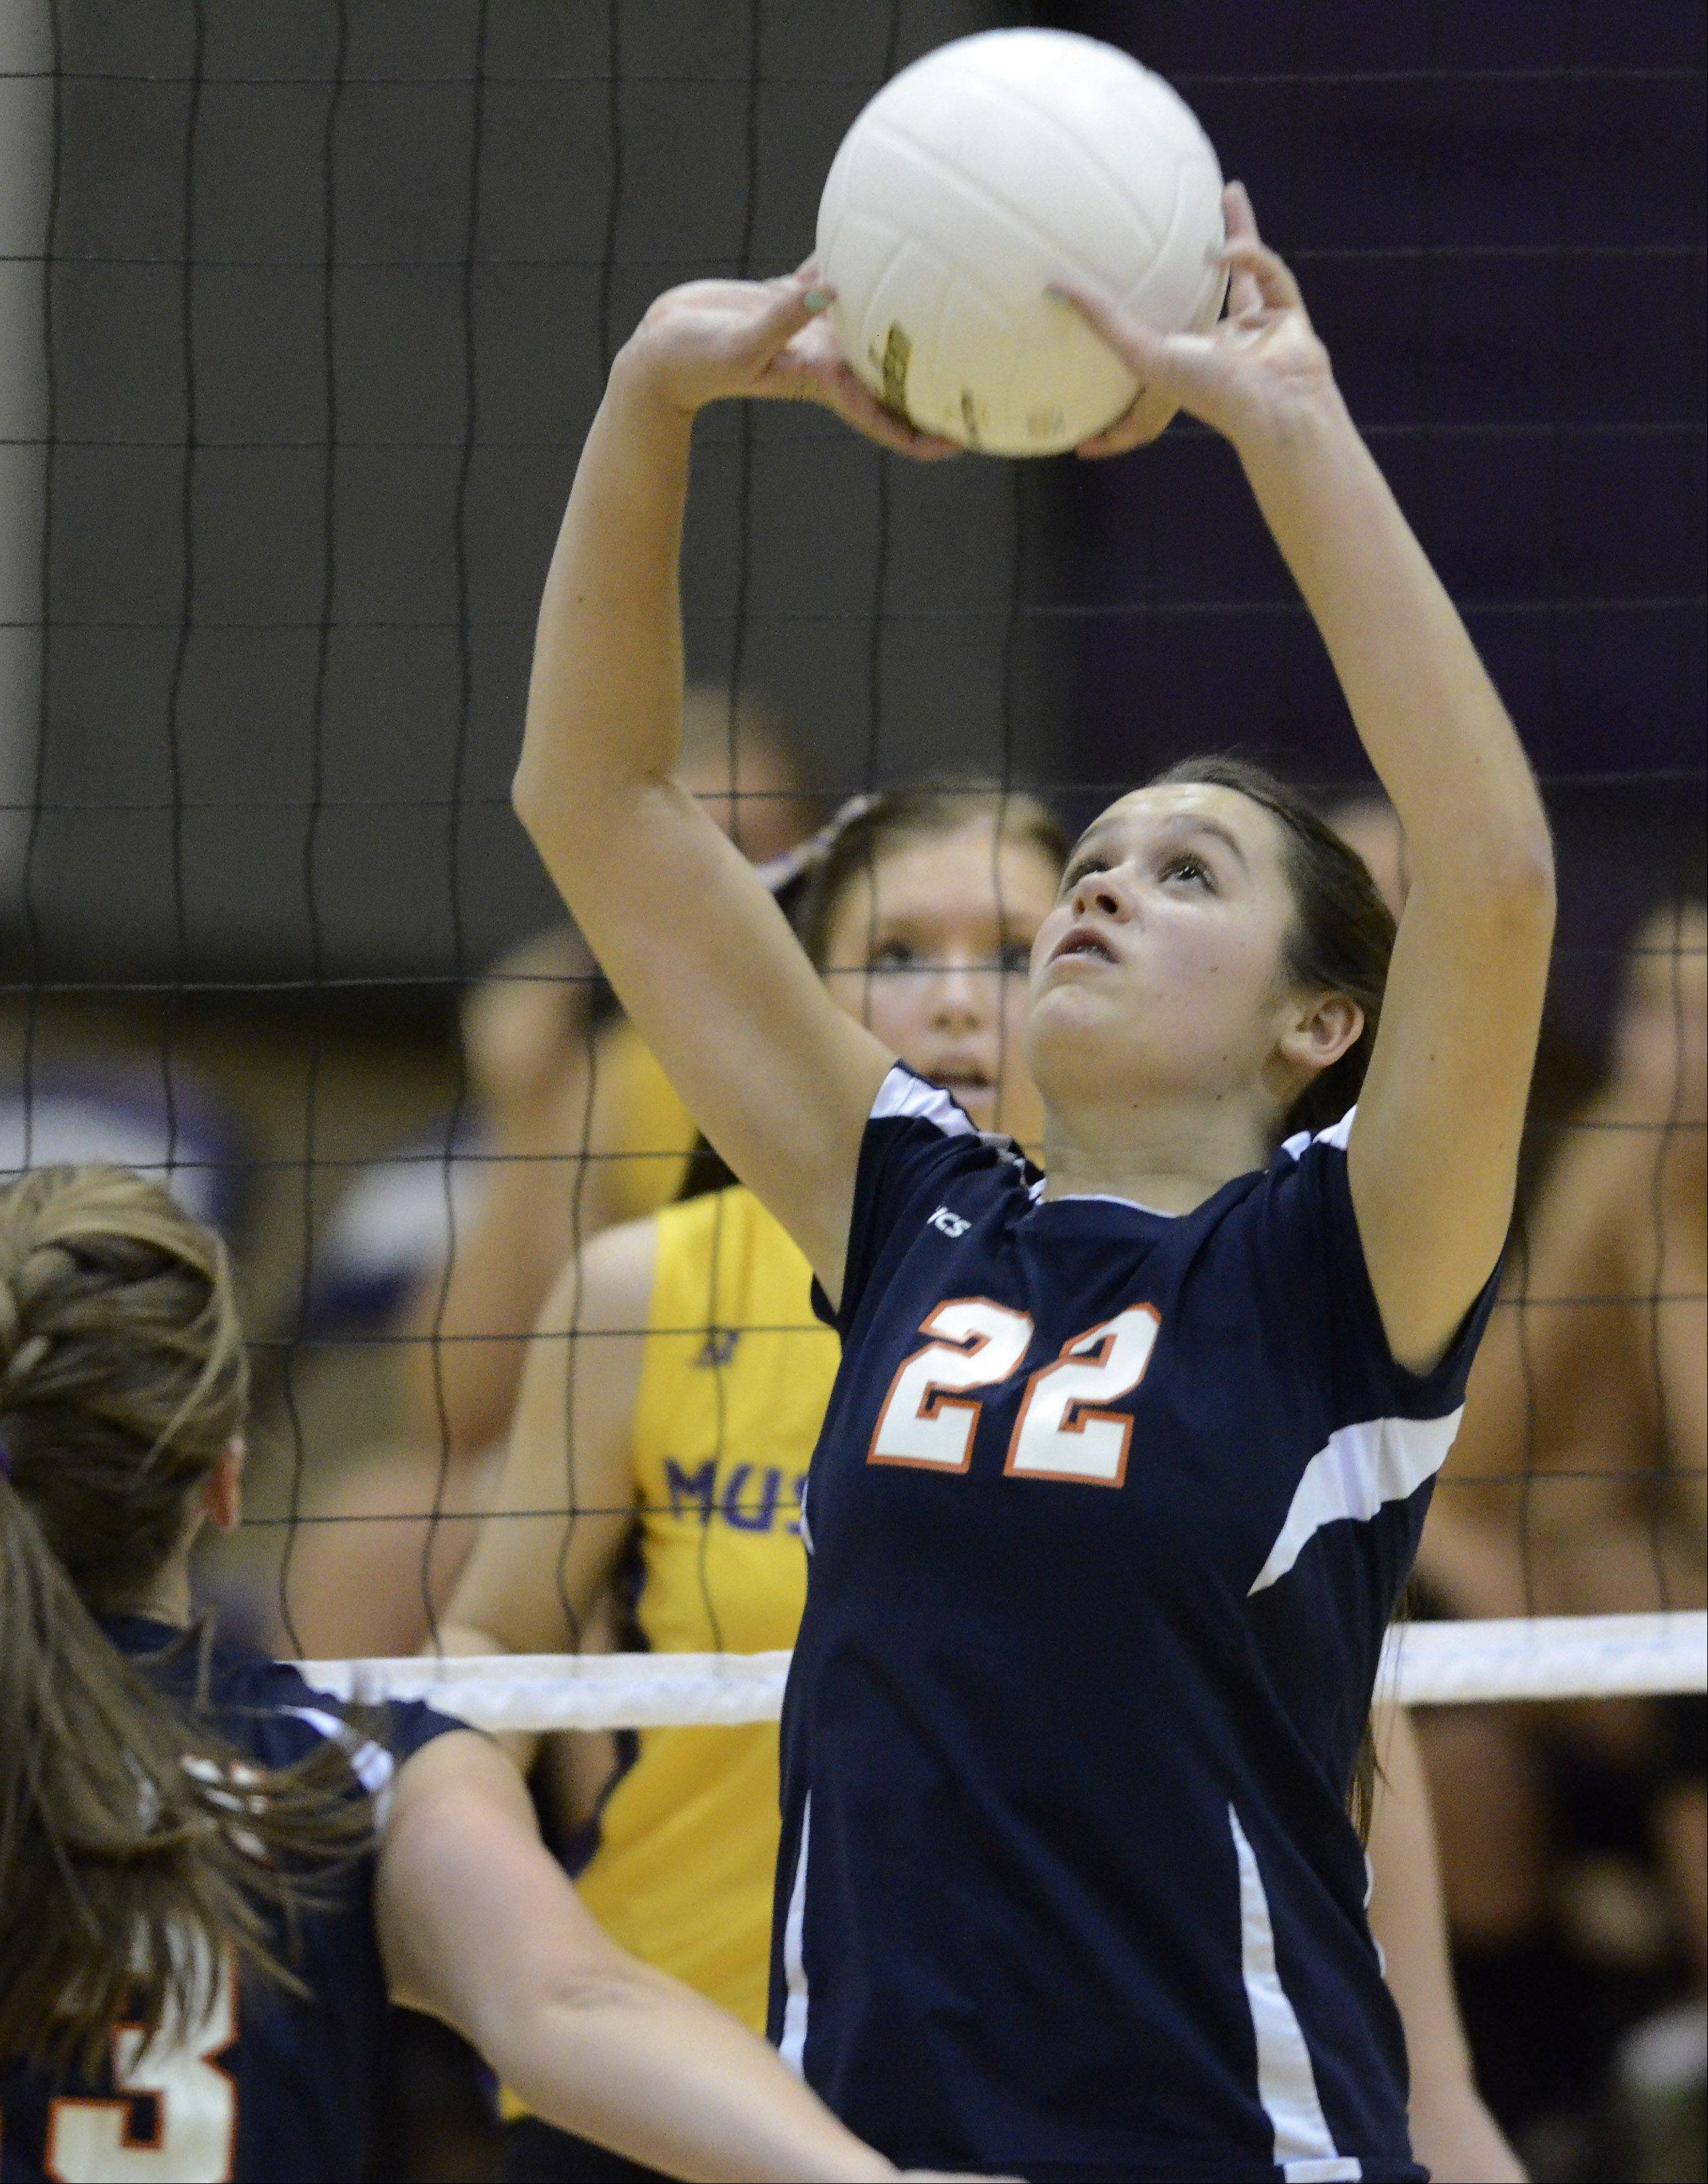 Buffalo Grove's Marie Georgoulis sets the ball during Thursday's game against Rolling Meadows. Her 8-point service streak was key to the Mustangs' victory.